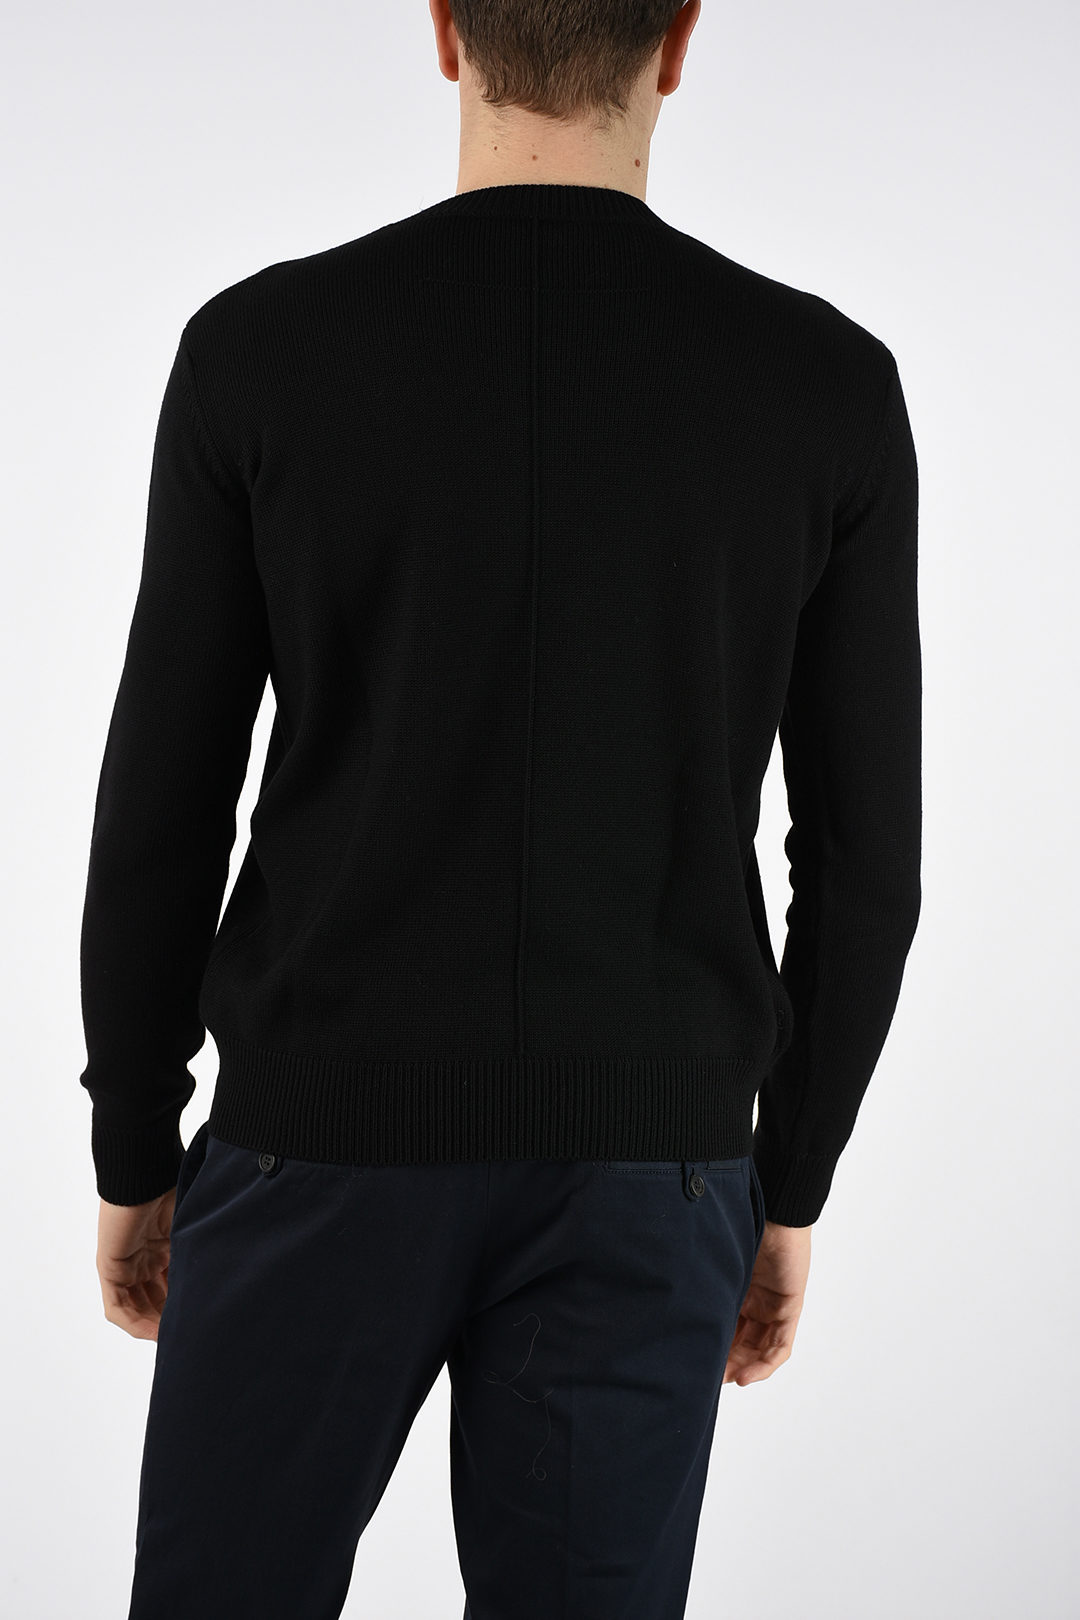 23cac242a3f2 Givenchy Striped Stars Sweater men - Glamood Outlet